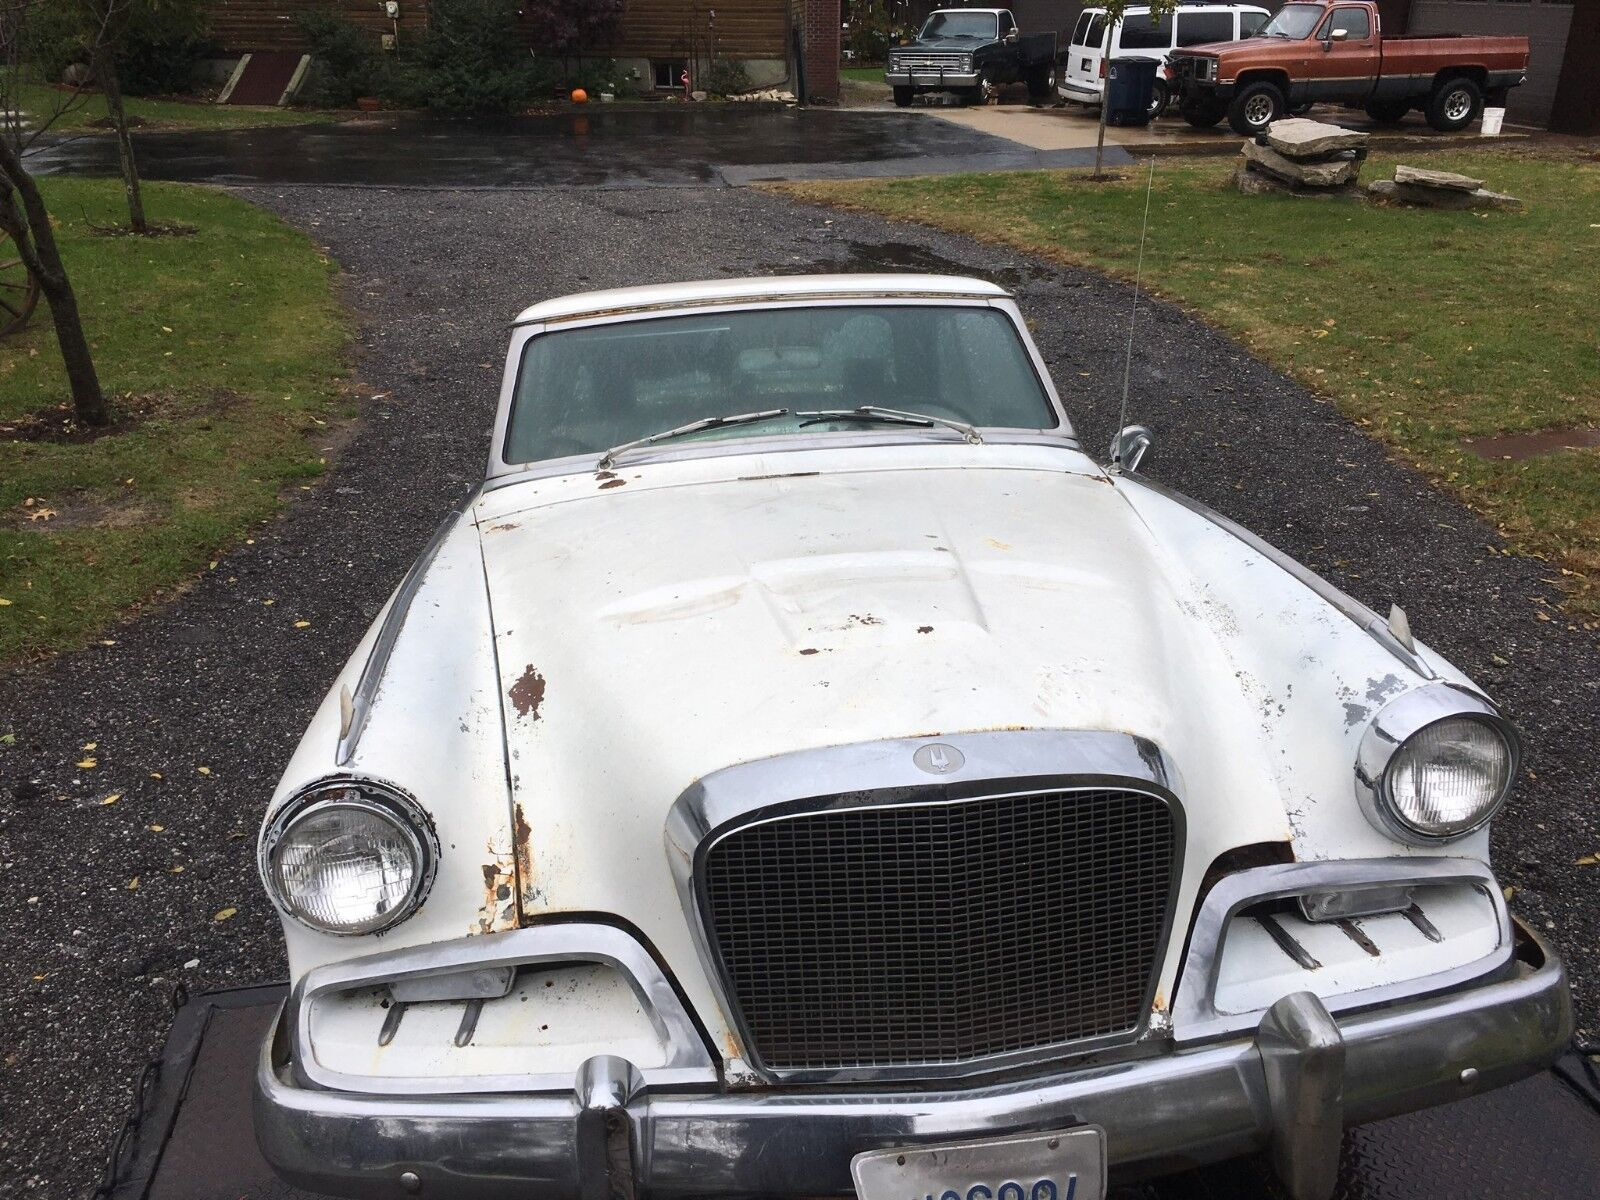 1962 Studebaker Hawk  1962 Studebaker GT Hawk - Rust Free California Car - Running, Driving